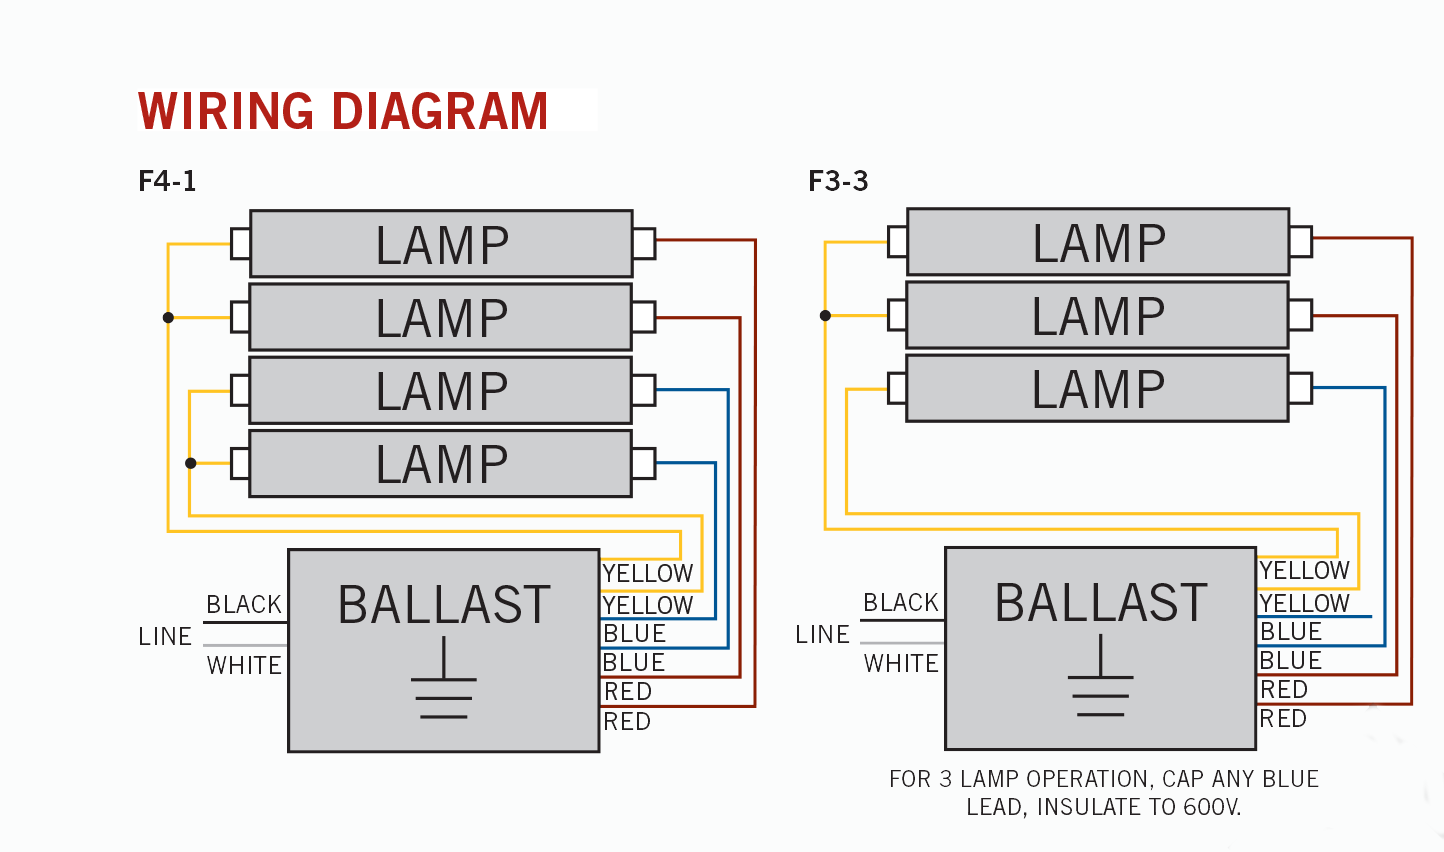 3 Lamp T8 Ballast Wiring Diagram from cdn.shopify.com